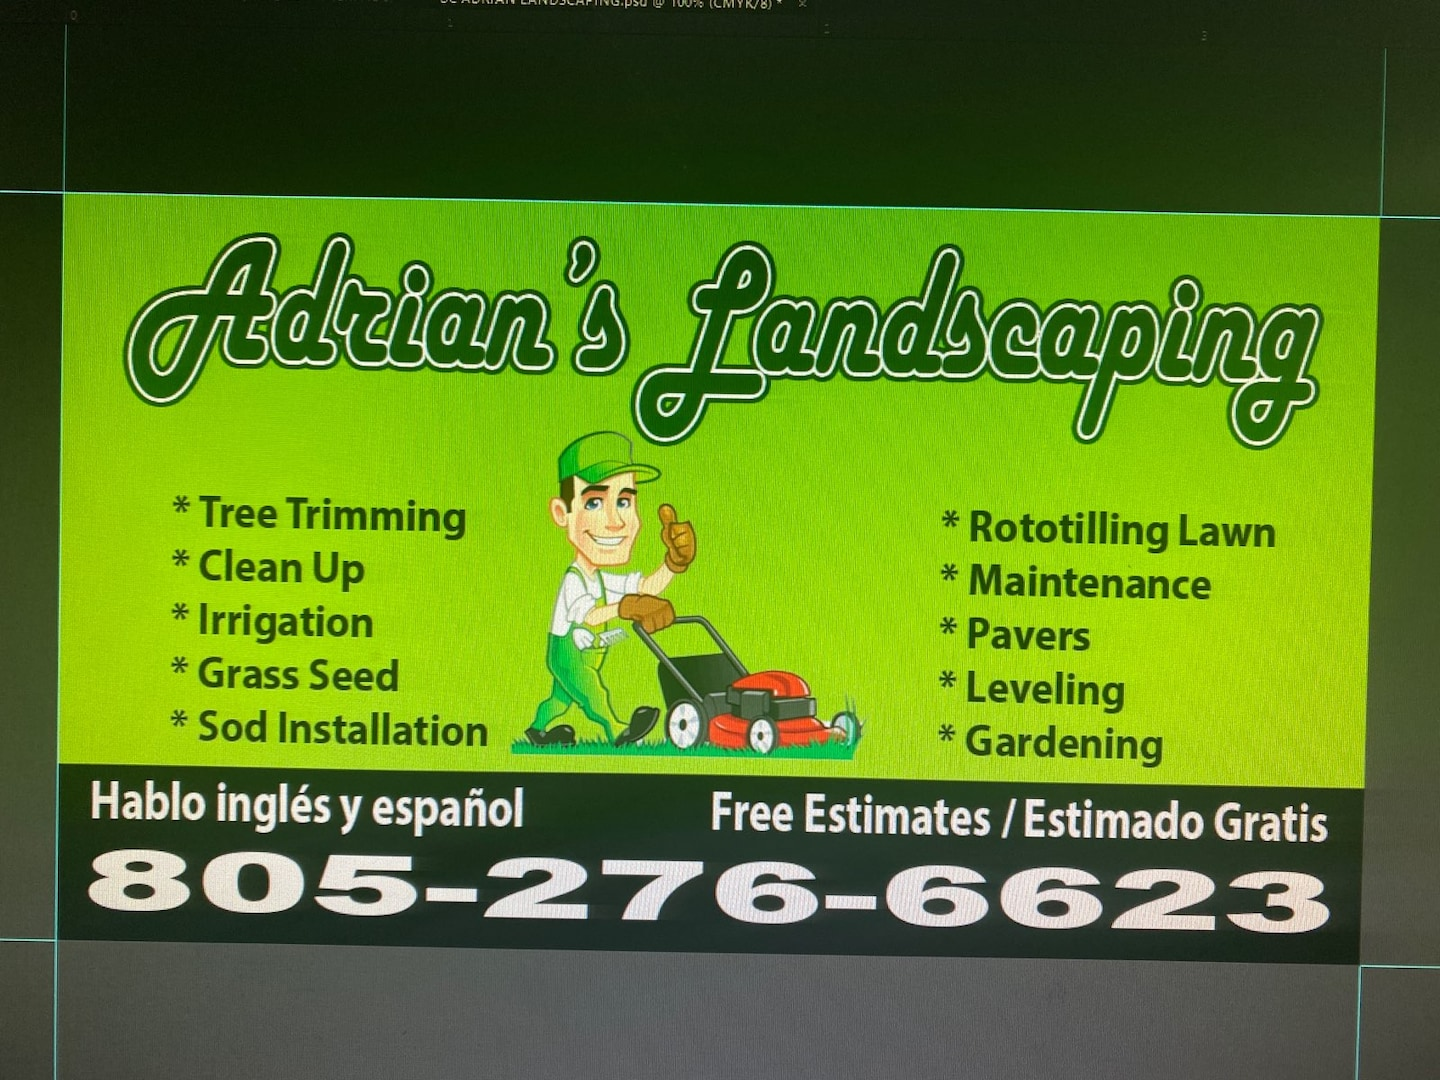 Adrian's Landscaping